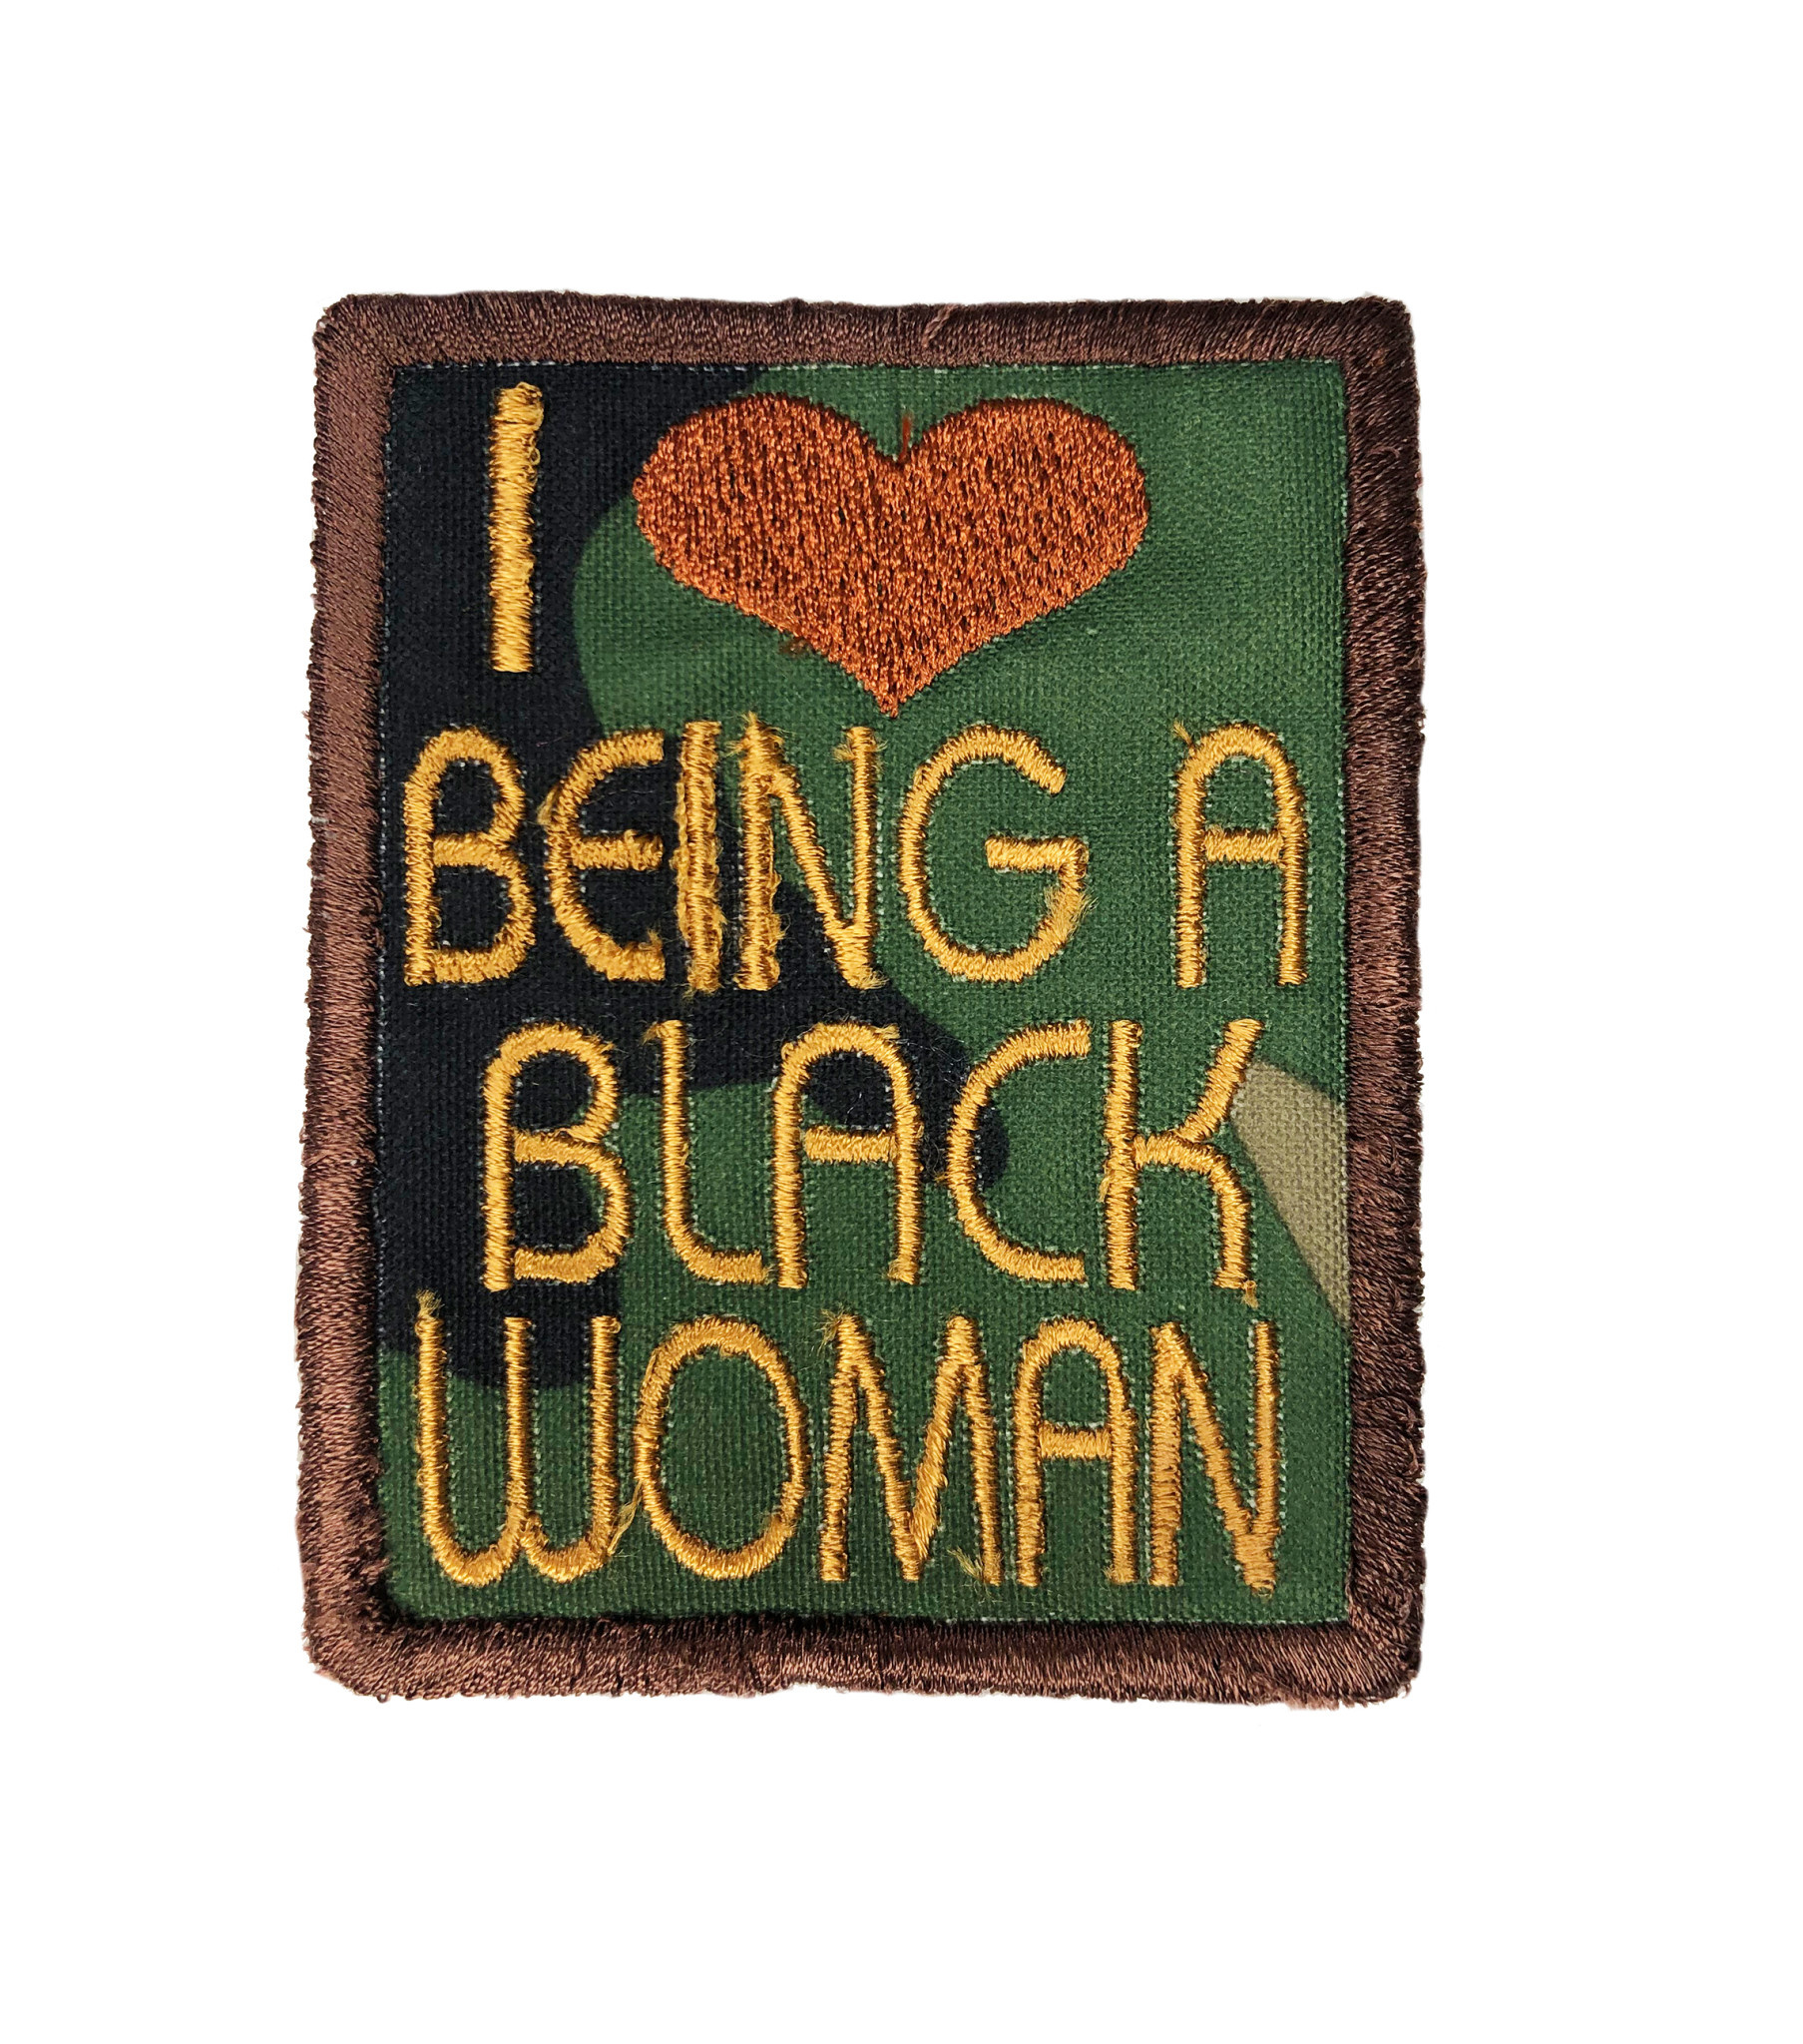 THE SHOP I LOVE BEING A BLACK WOMAN PATCHES-2